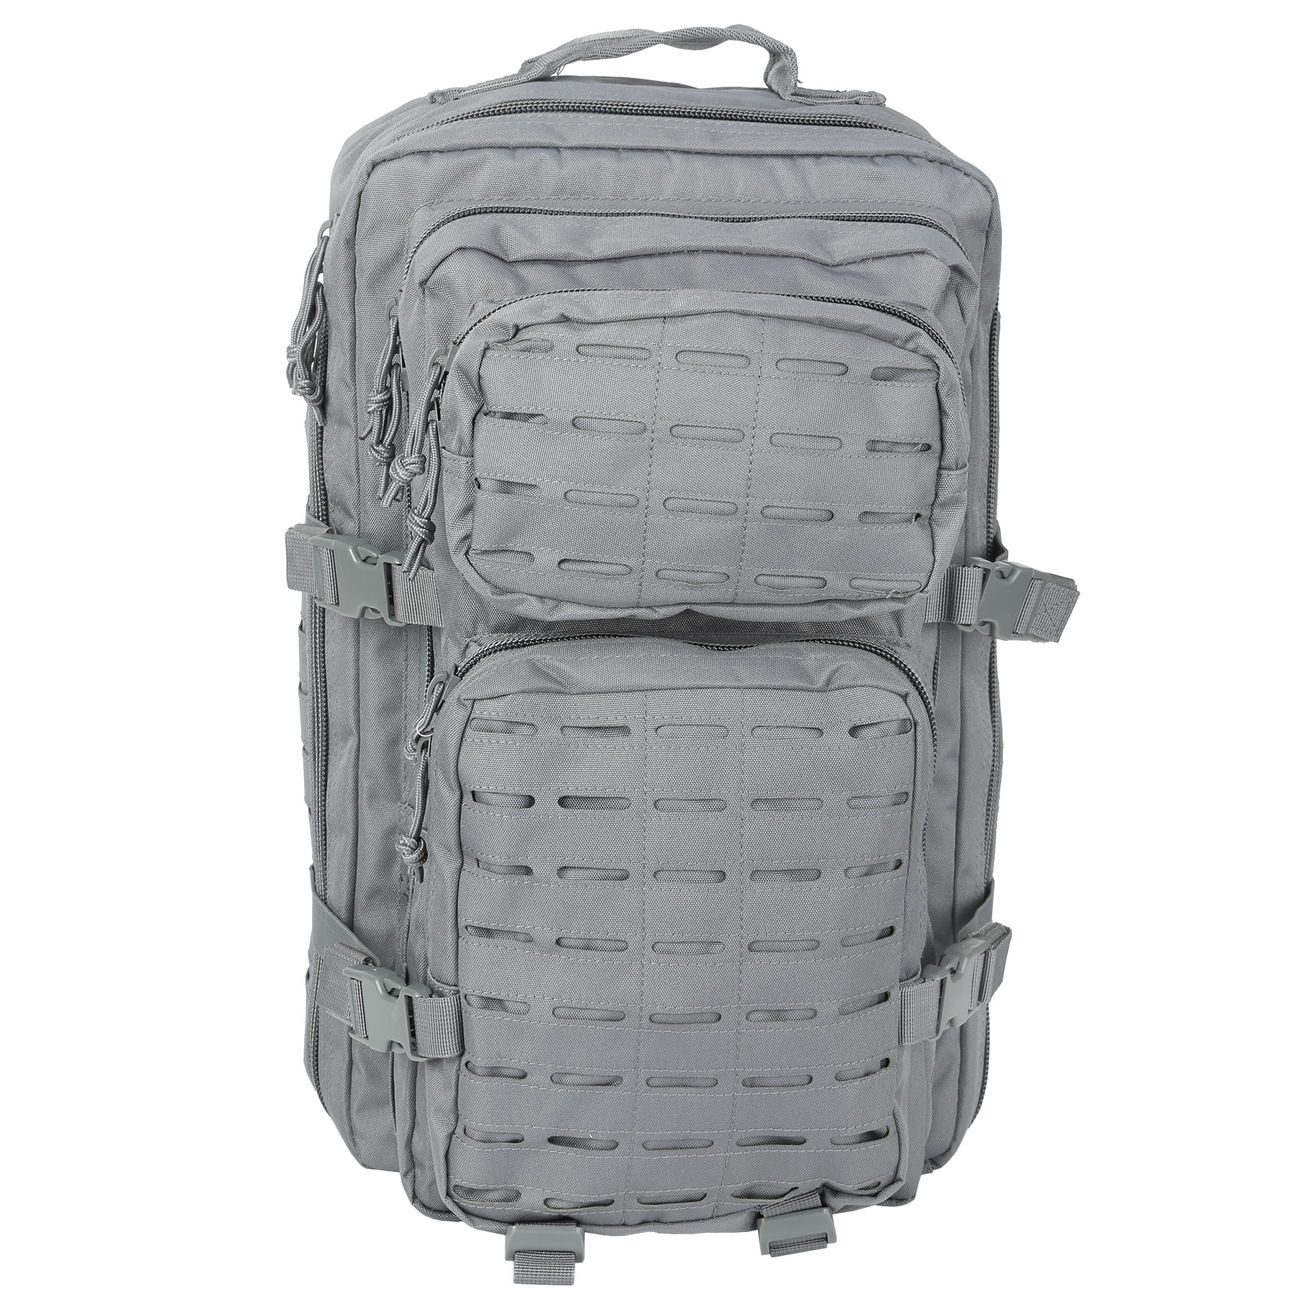 Mil-Tec Rucksack US Assault Pack Laser Cut large 36L Urban grey 6